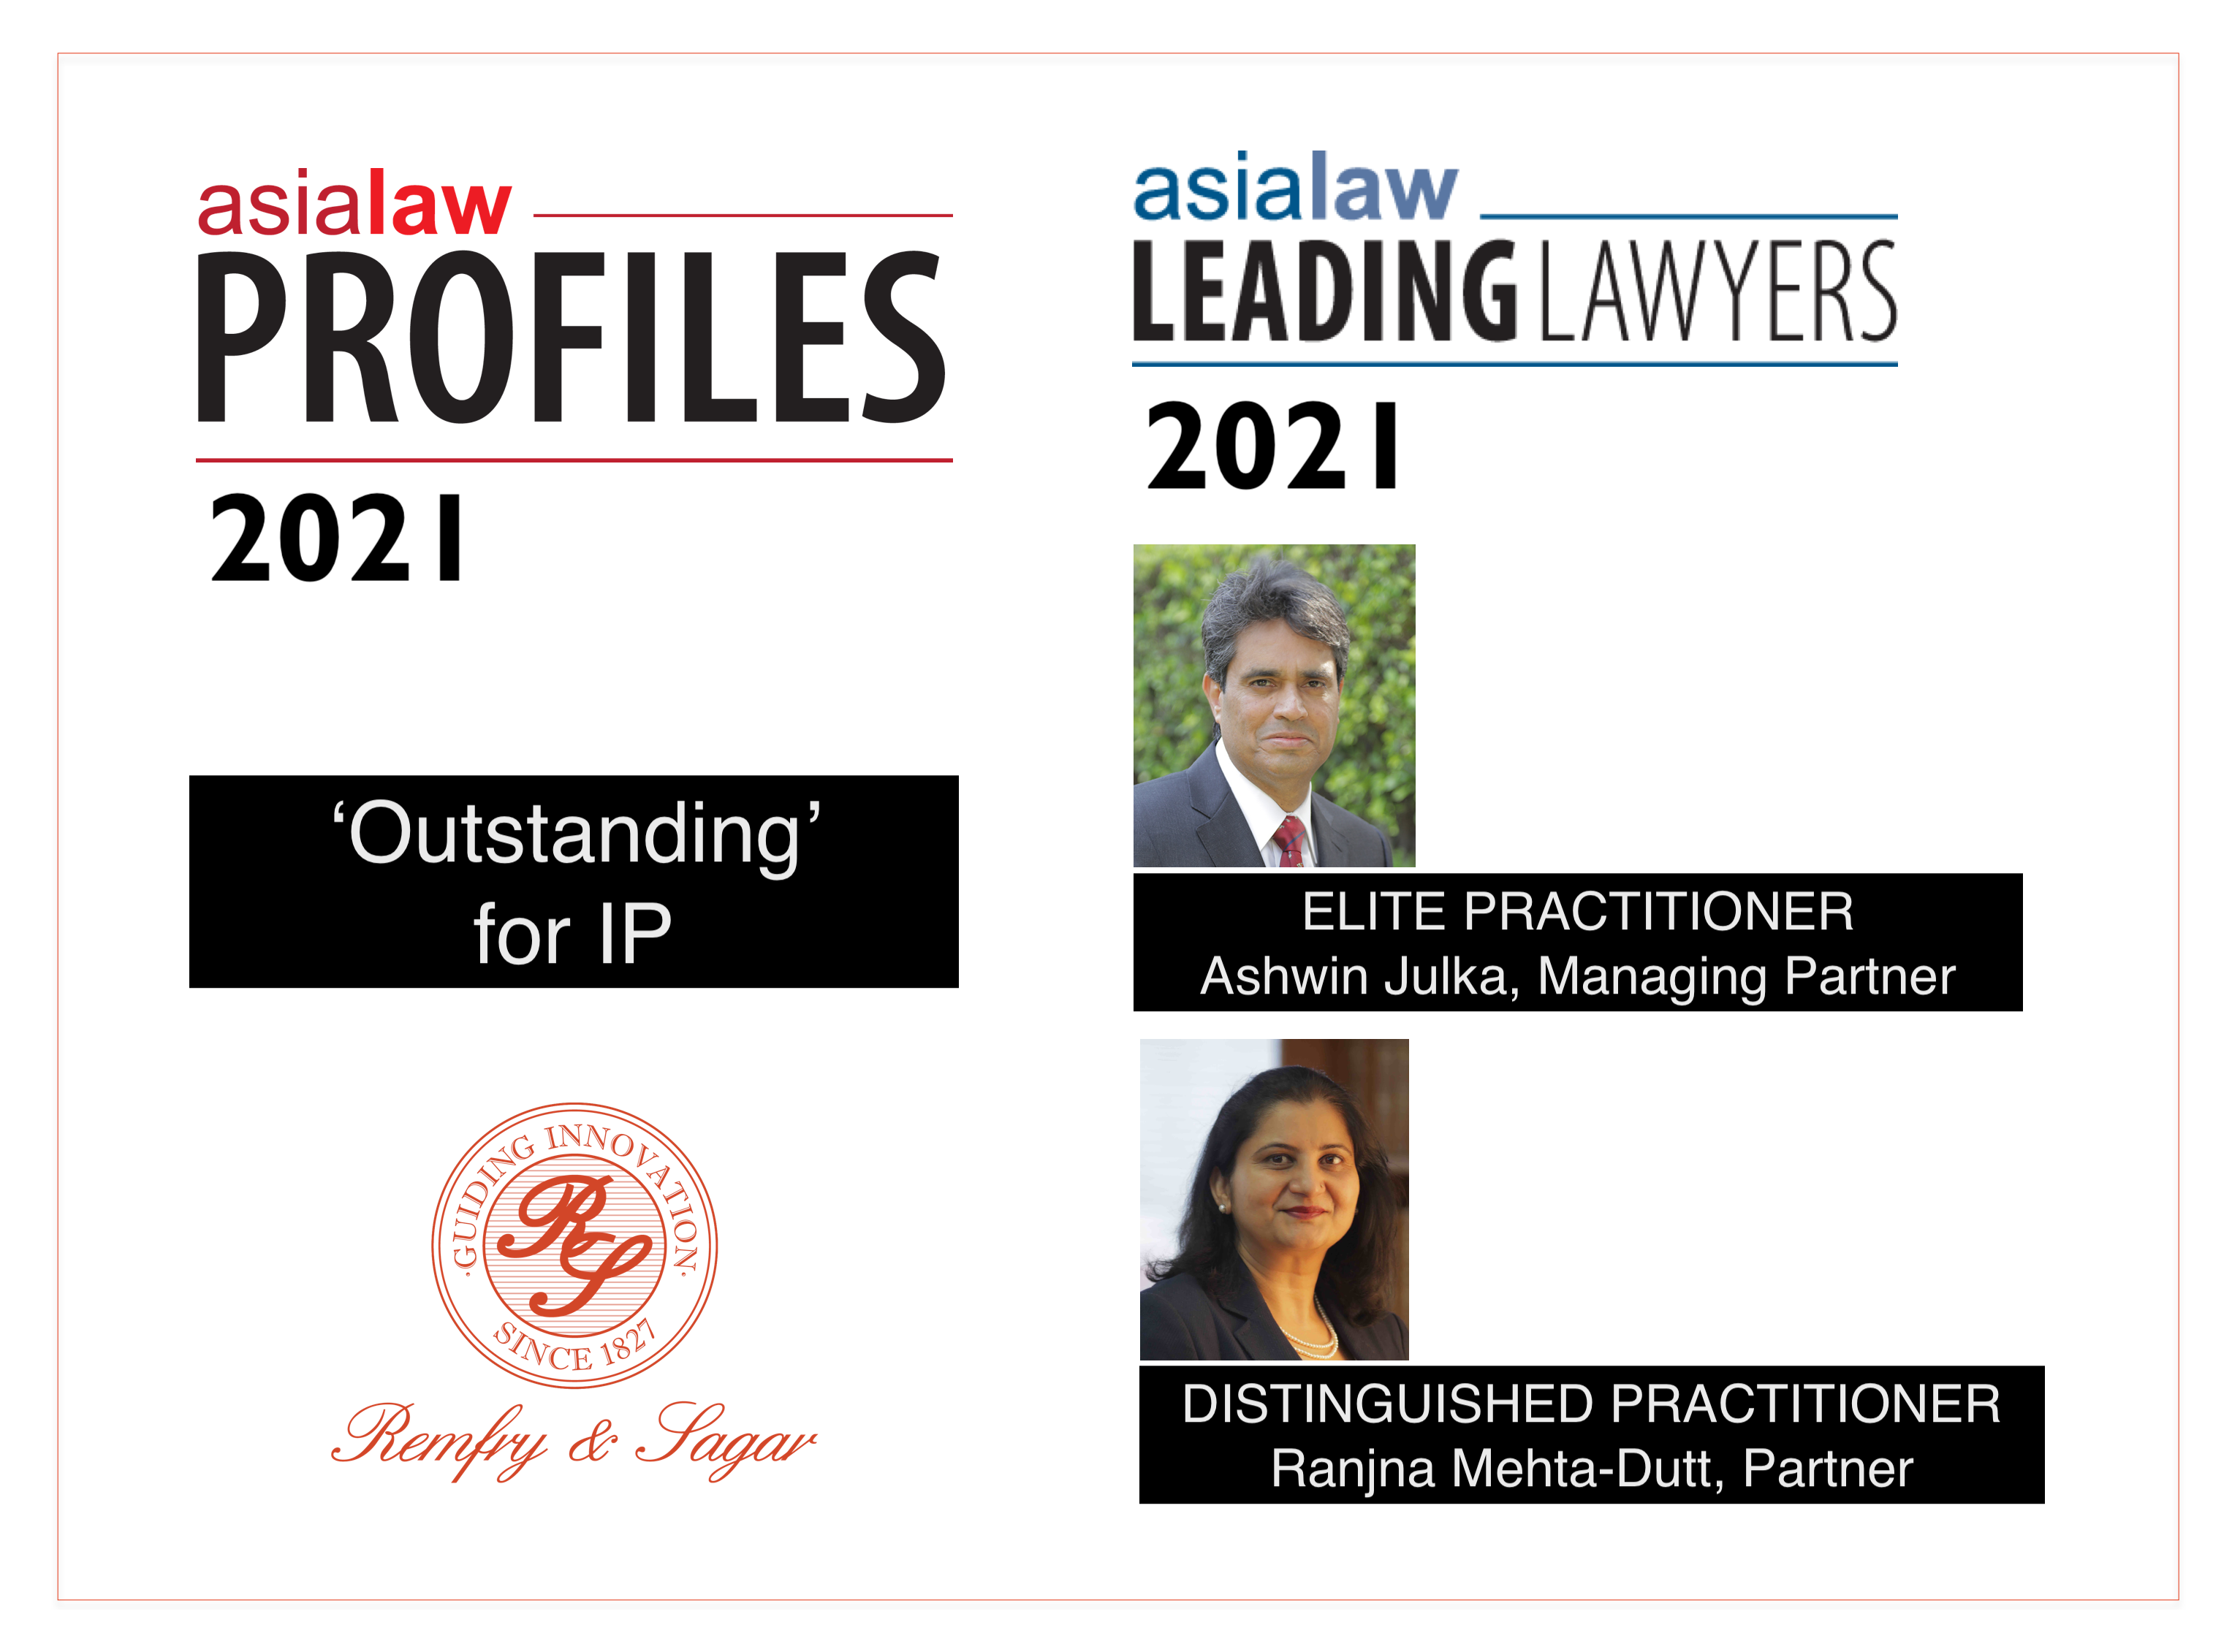 Asialaw Profiles & Leading Lawyers 2021